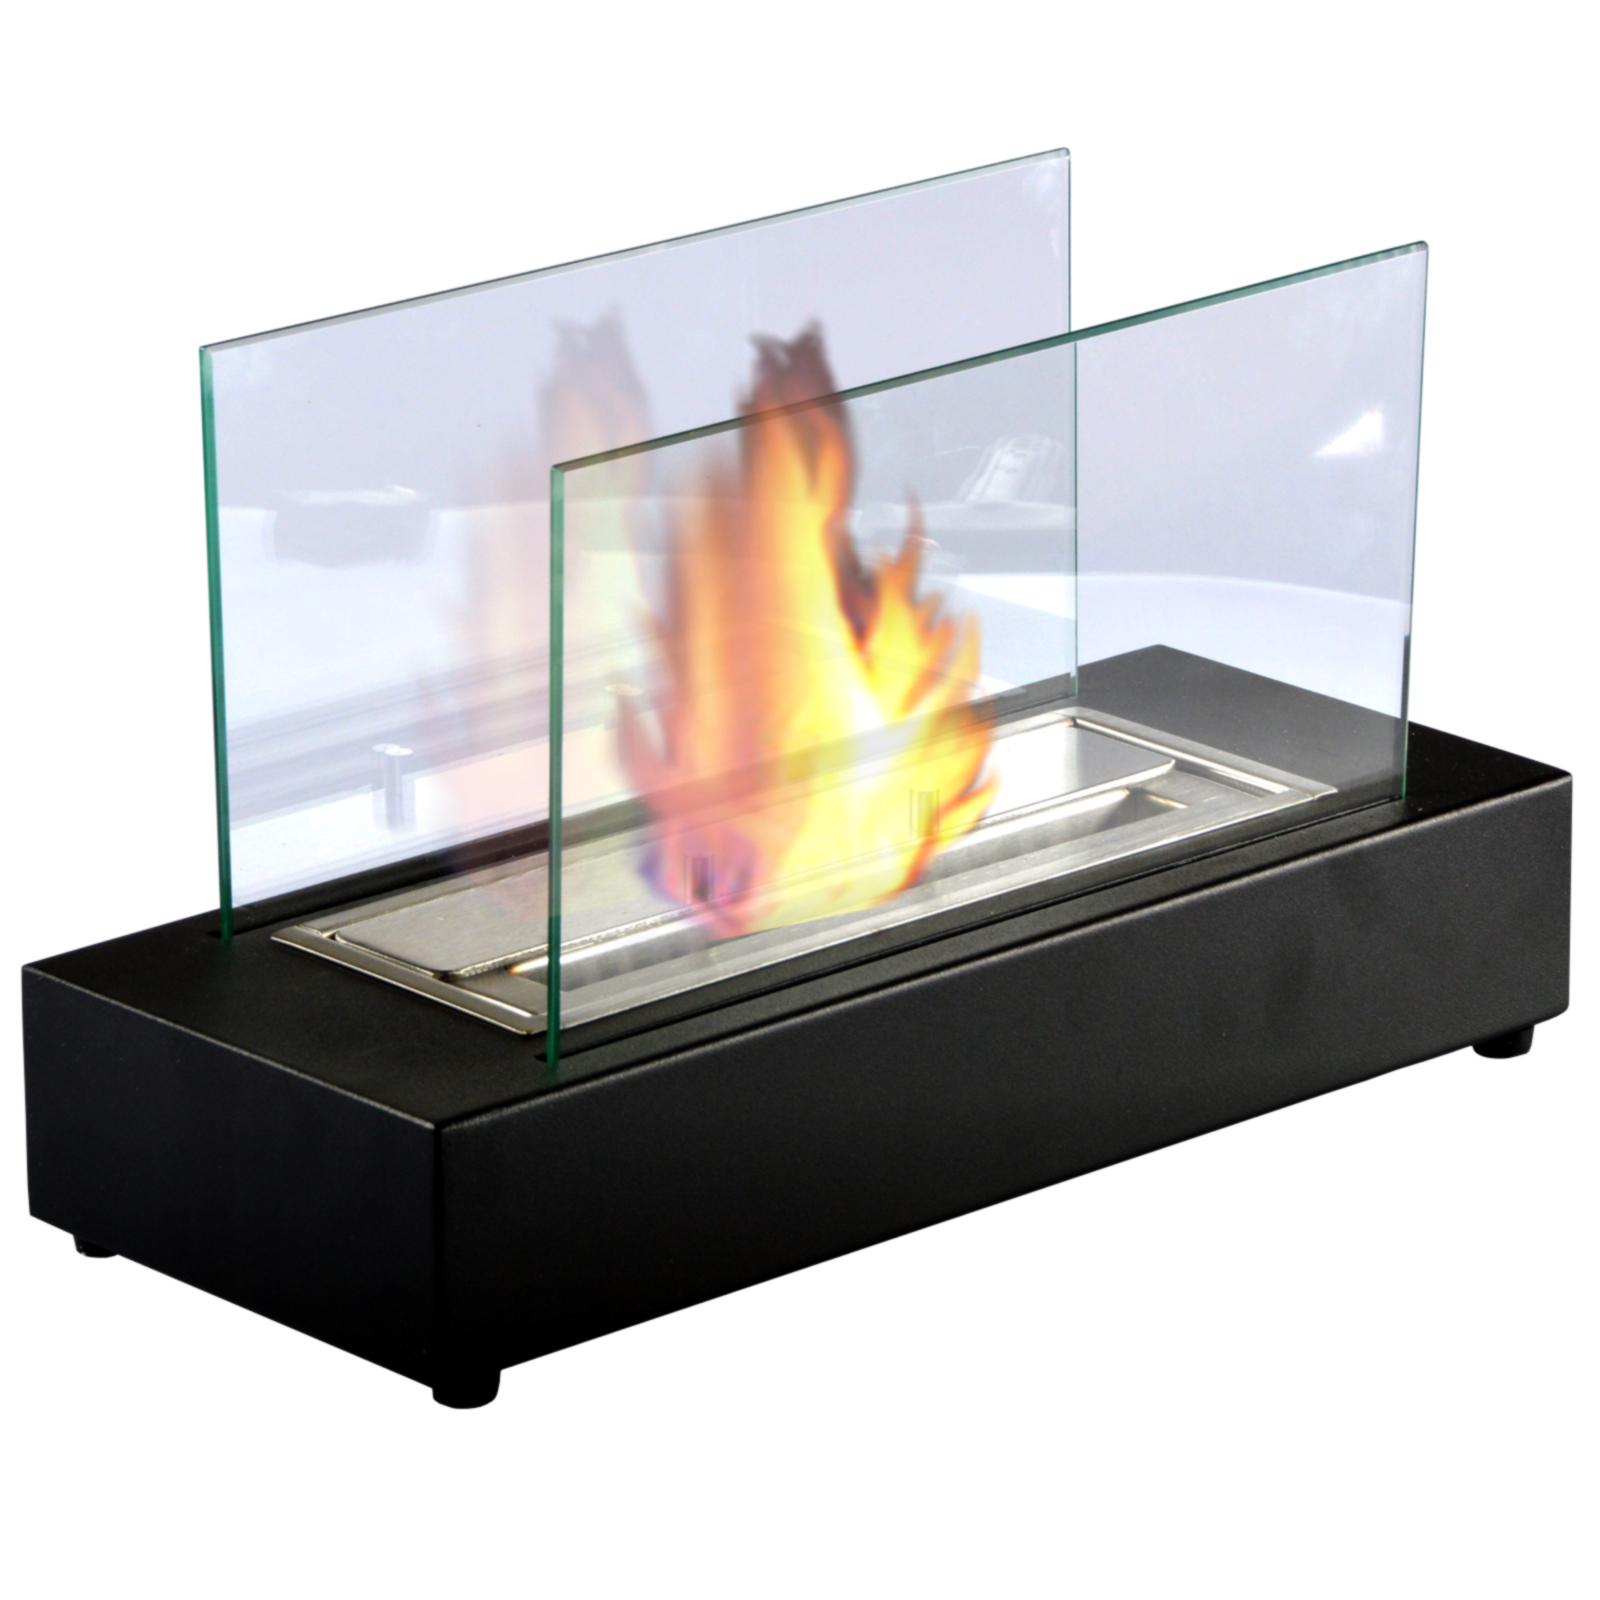 berlin schwarz tischkamin bio ethanol tischfeuer mit sicherheitsglas kamin ebay. Black Bedroom Furniture Sets. Home Design Ideas